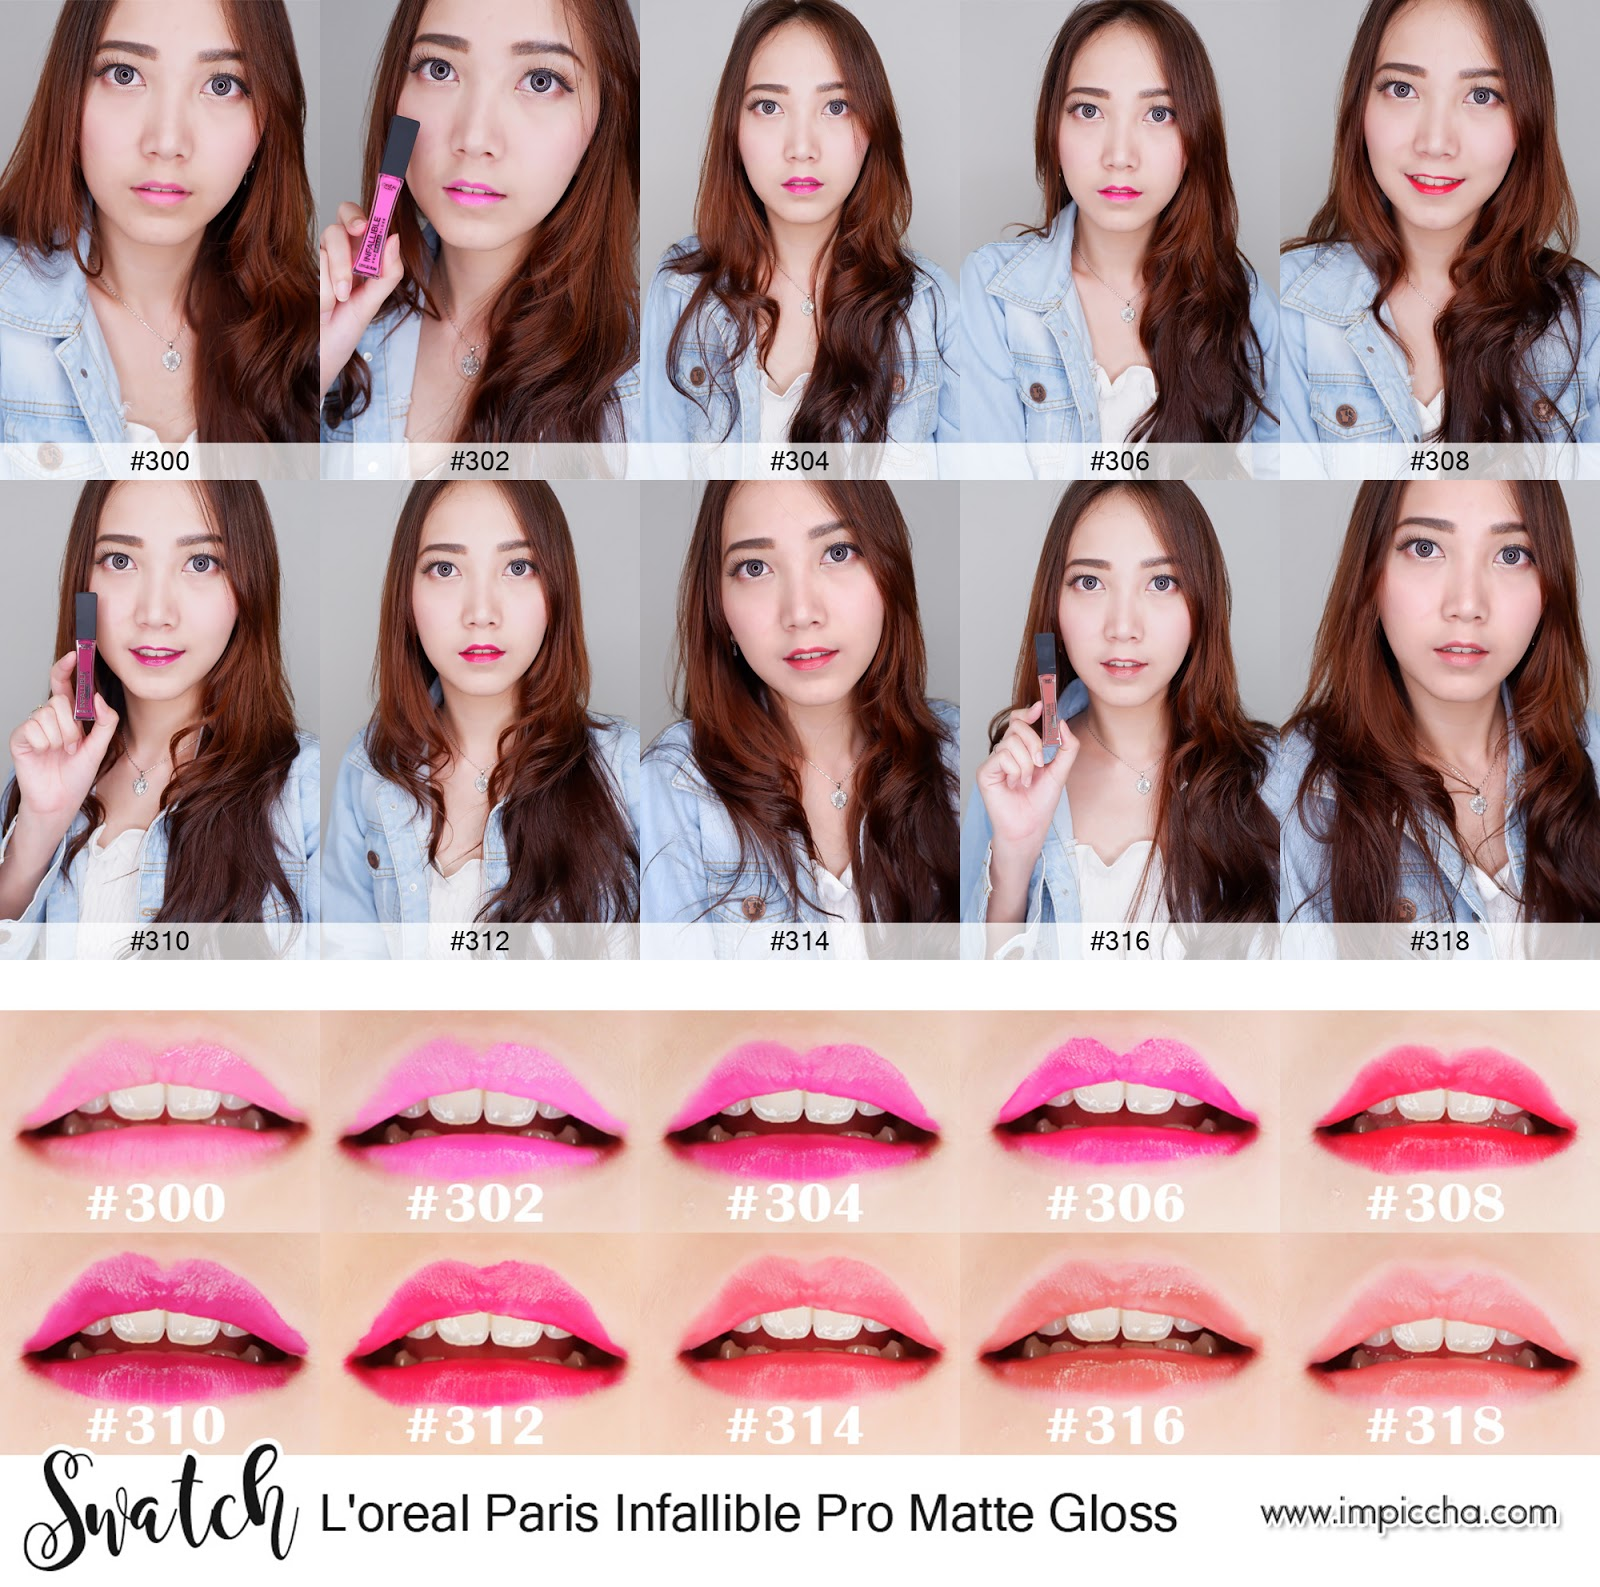 Swatch L'oreal Paris Infallible Pro Matte Gloss